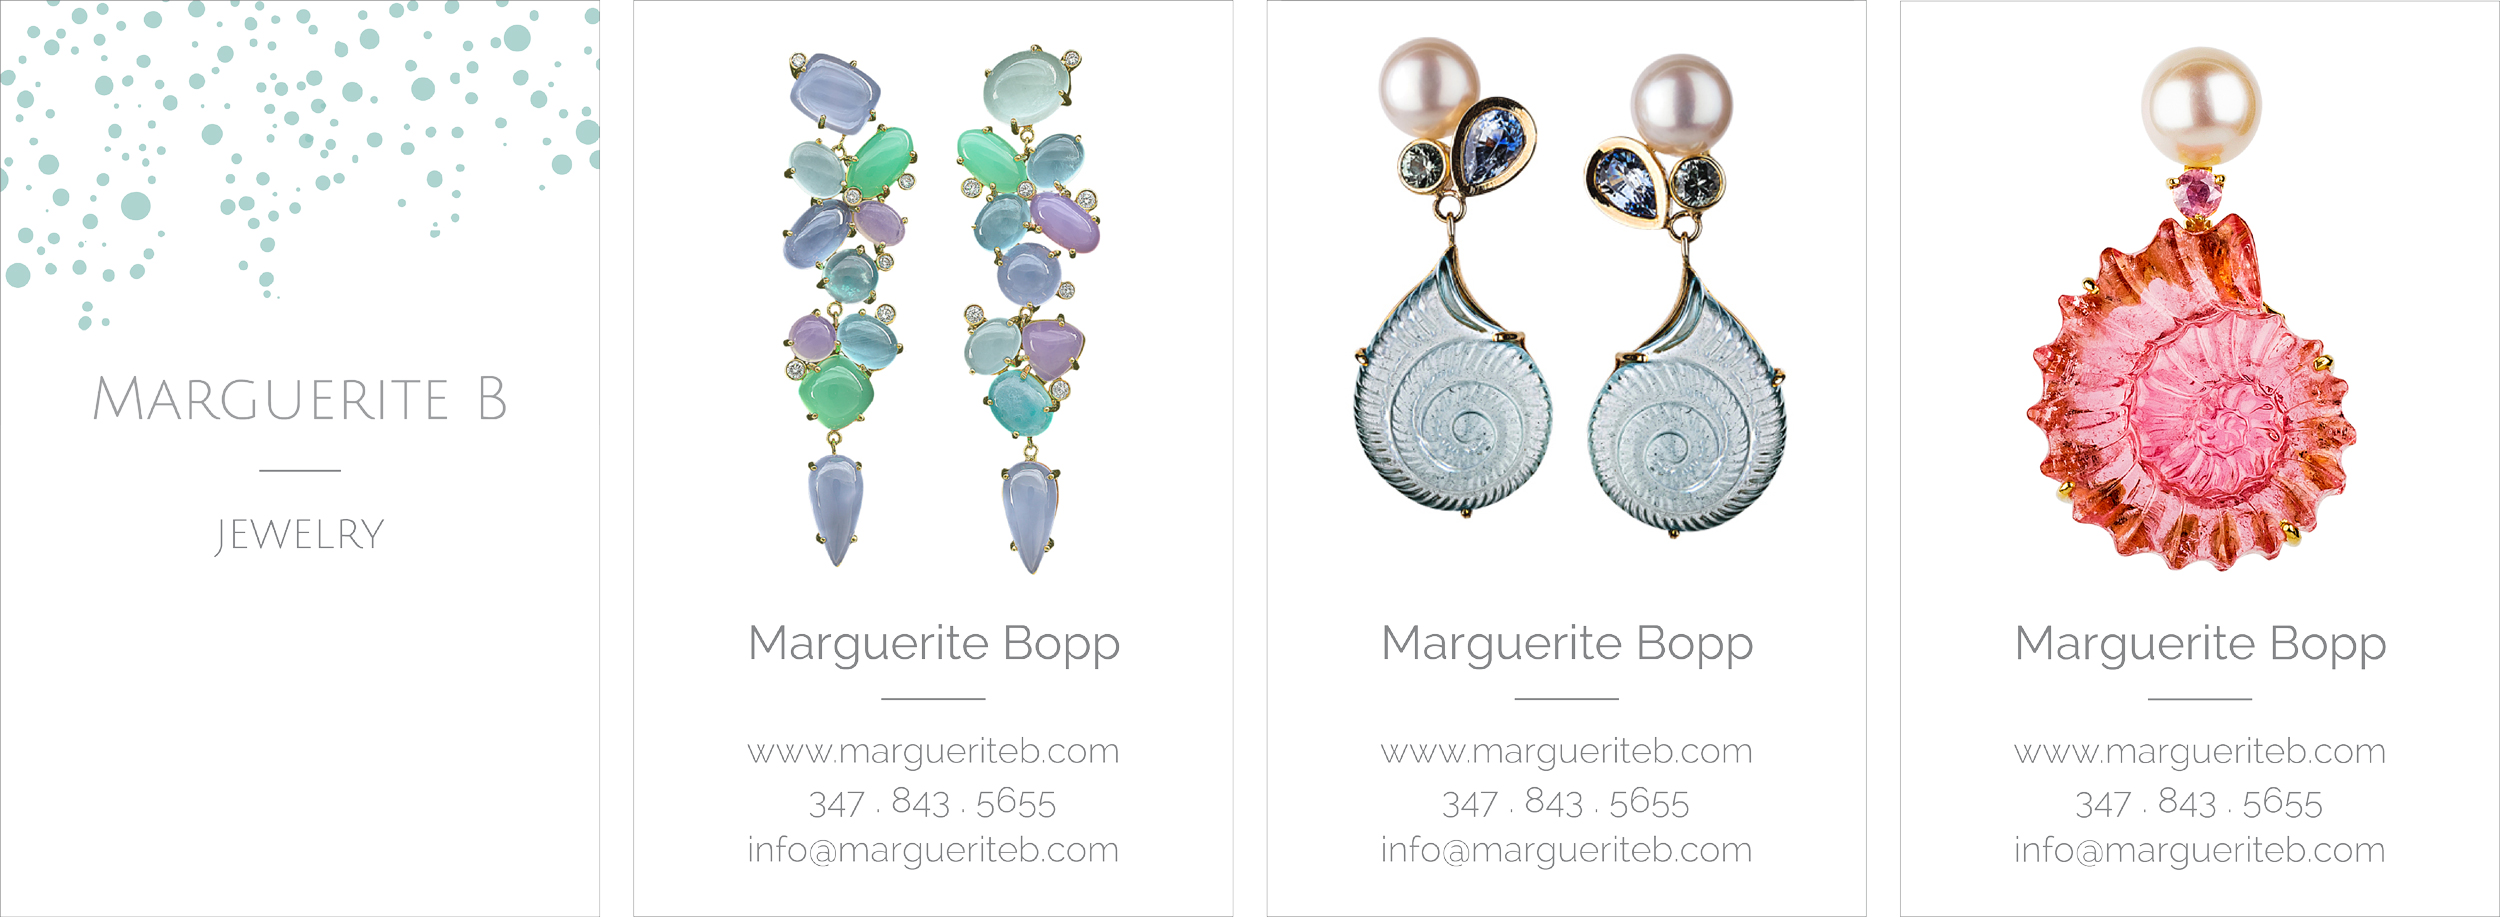 bussiness-cards-branding-case-study-marguerite-b-jewelry.jpg